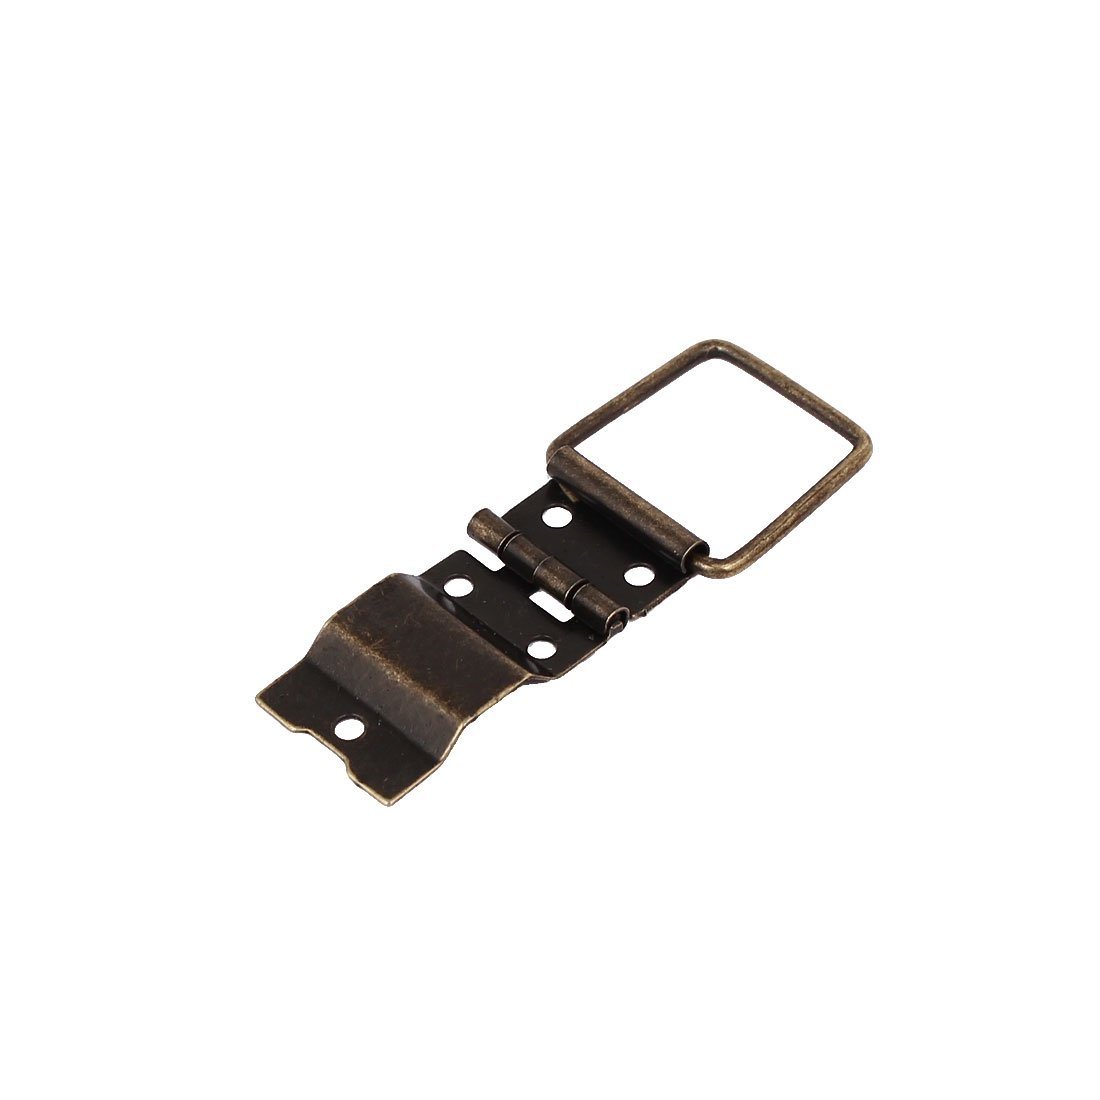 uxcell Box Case Retro Style Positioning Support Hinges Bronze Tone 37.5mmx16.5mm